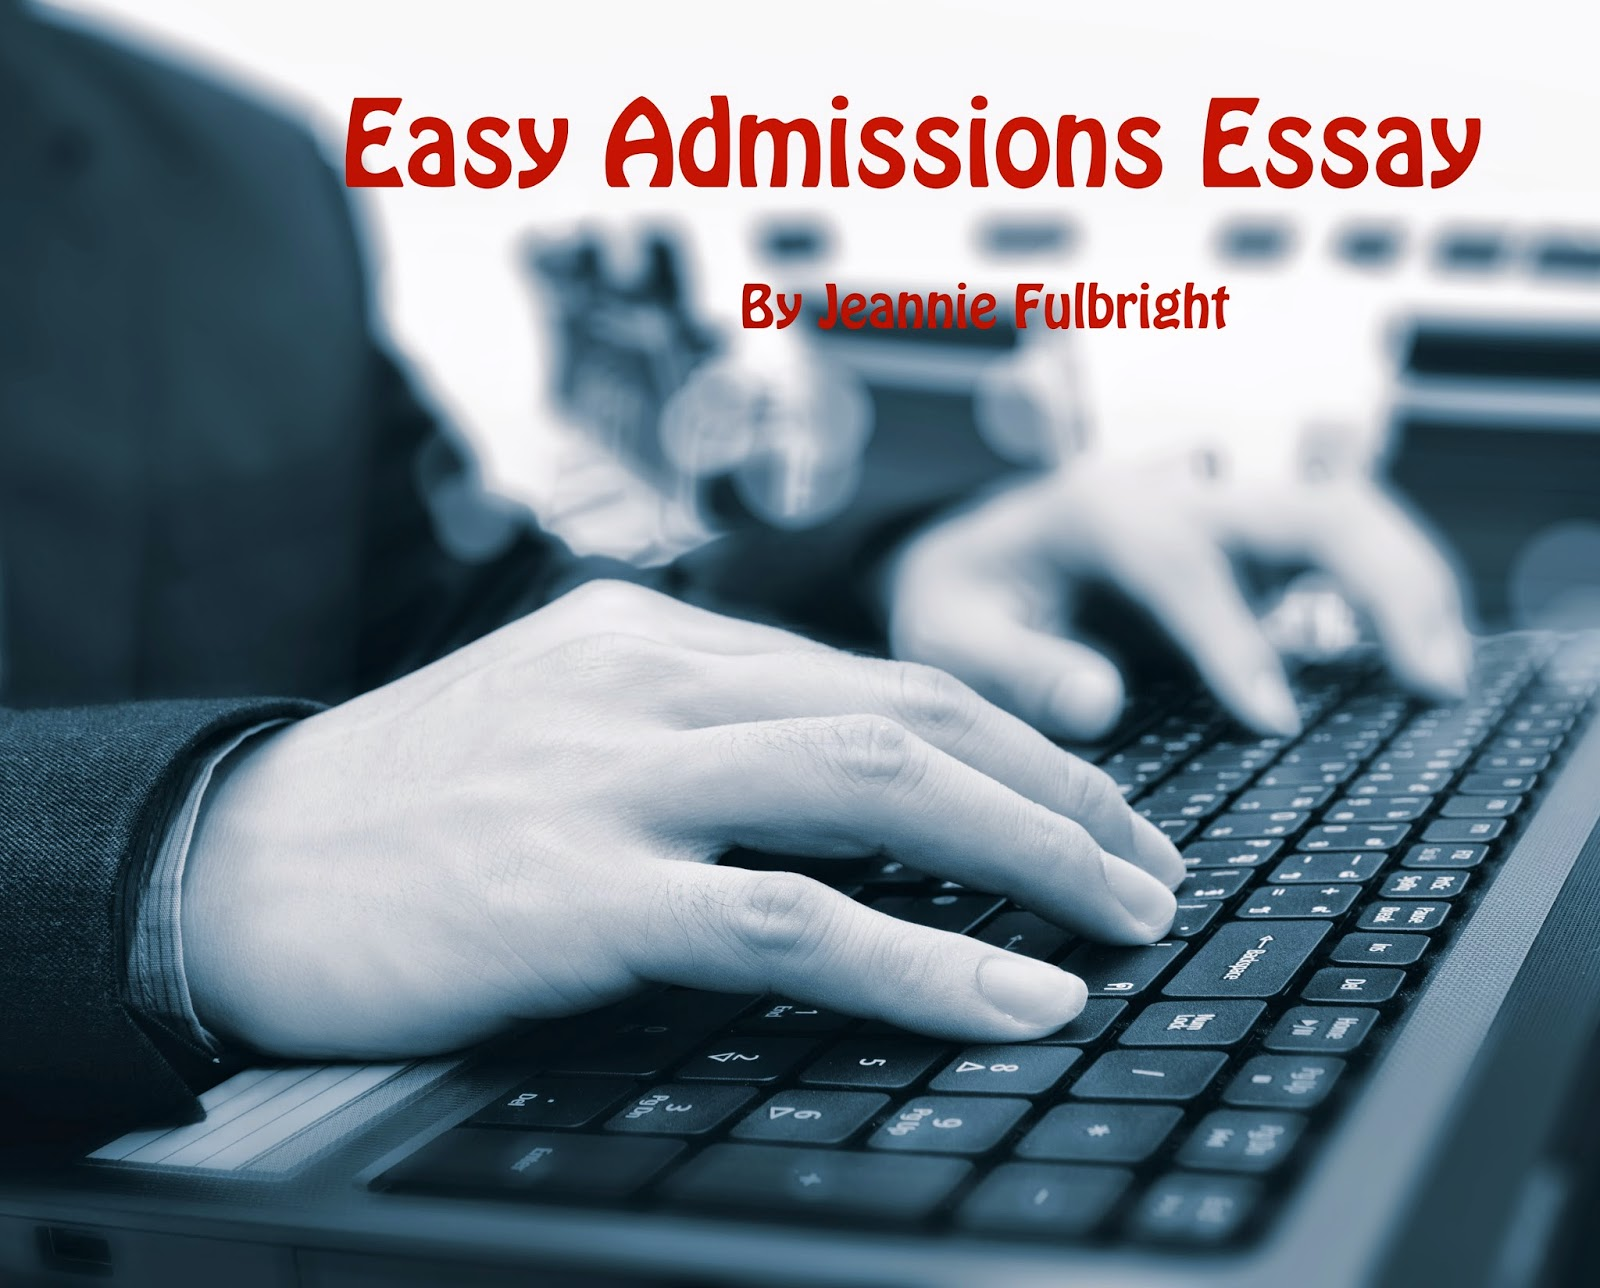 jeannie fulbright college crash course part easy admissions no matter what anyone tells you the essay is not the most important piece of the college admissions puzzle it won t make or break your child s chances